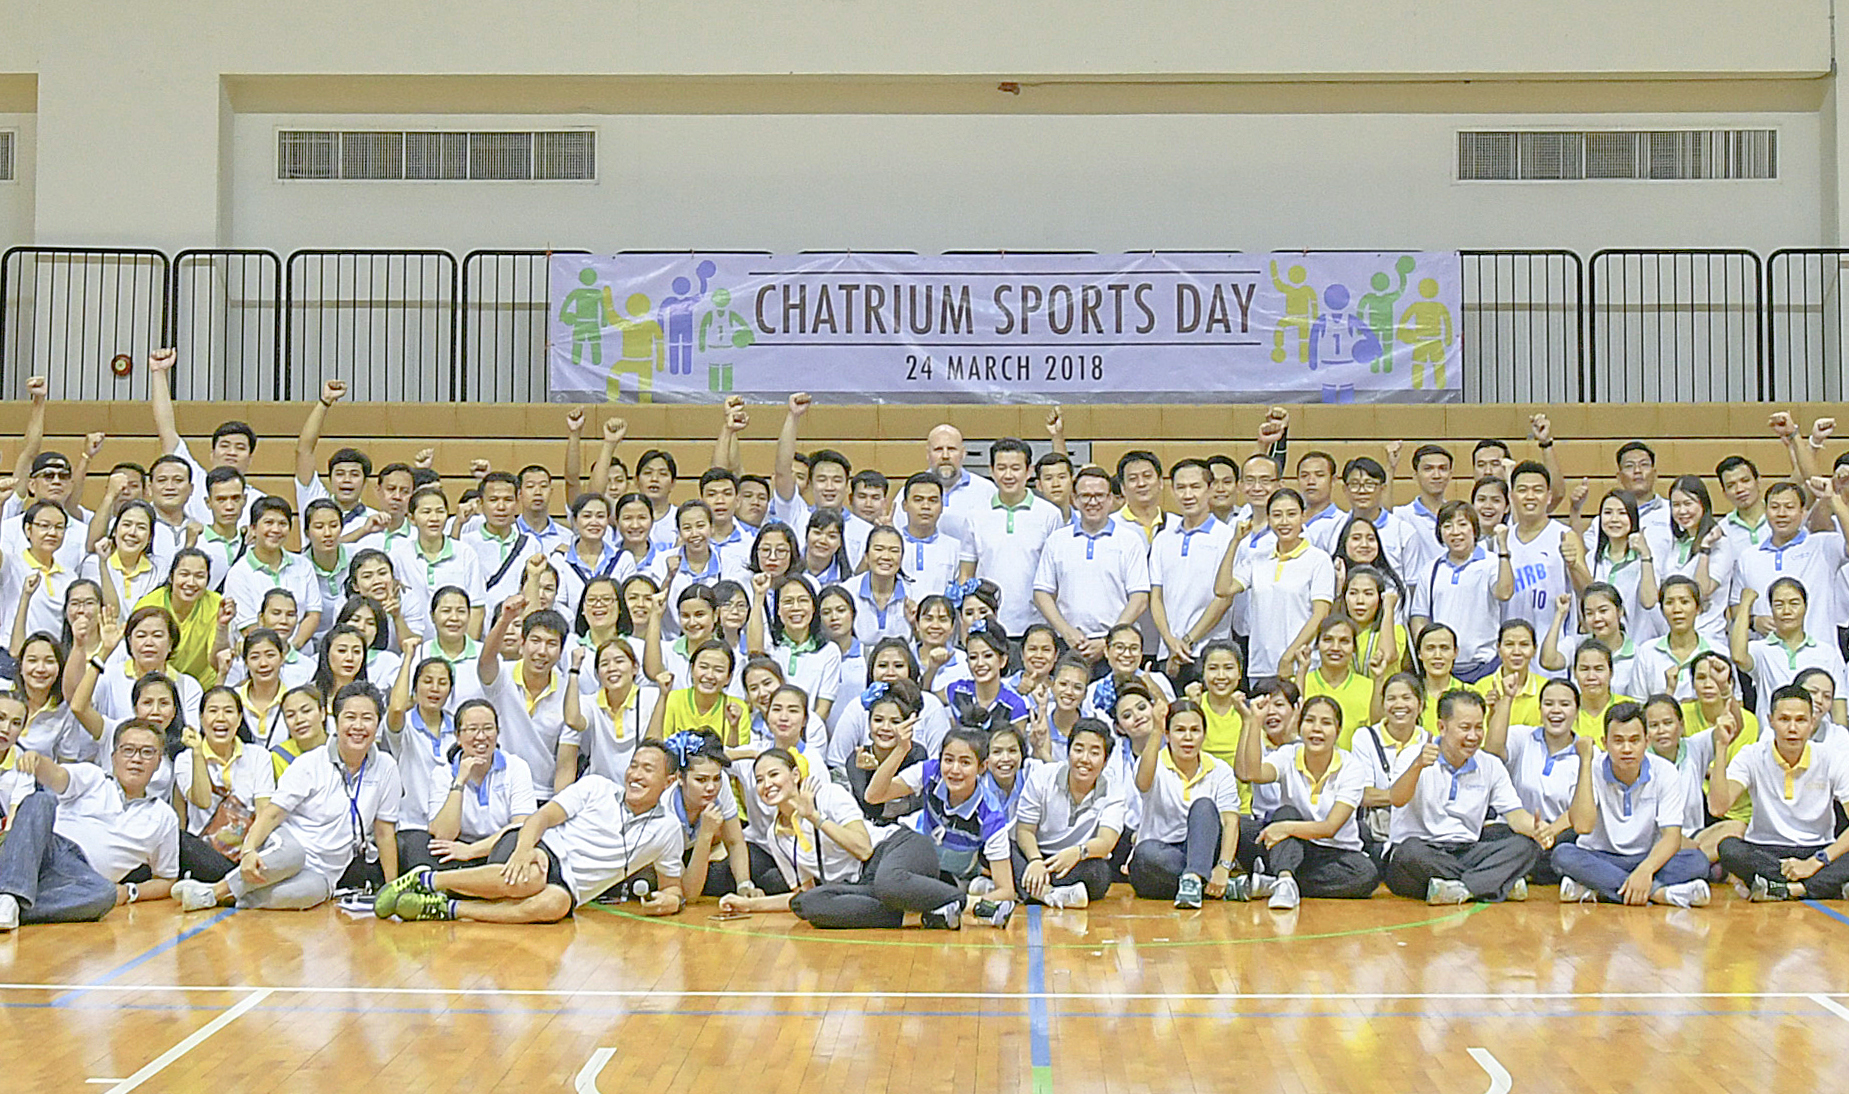 Chatrium Hotels & Residences Employees Come Together For Chatrium Sports Day At CU Sport Complex